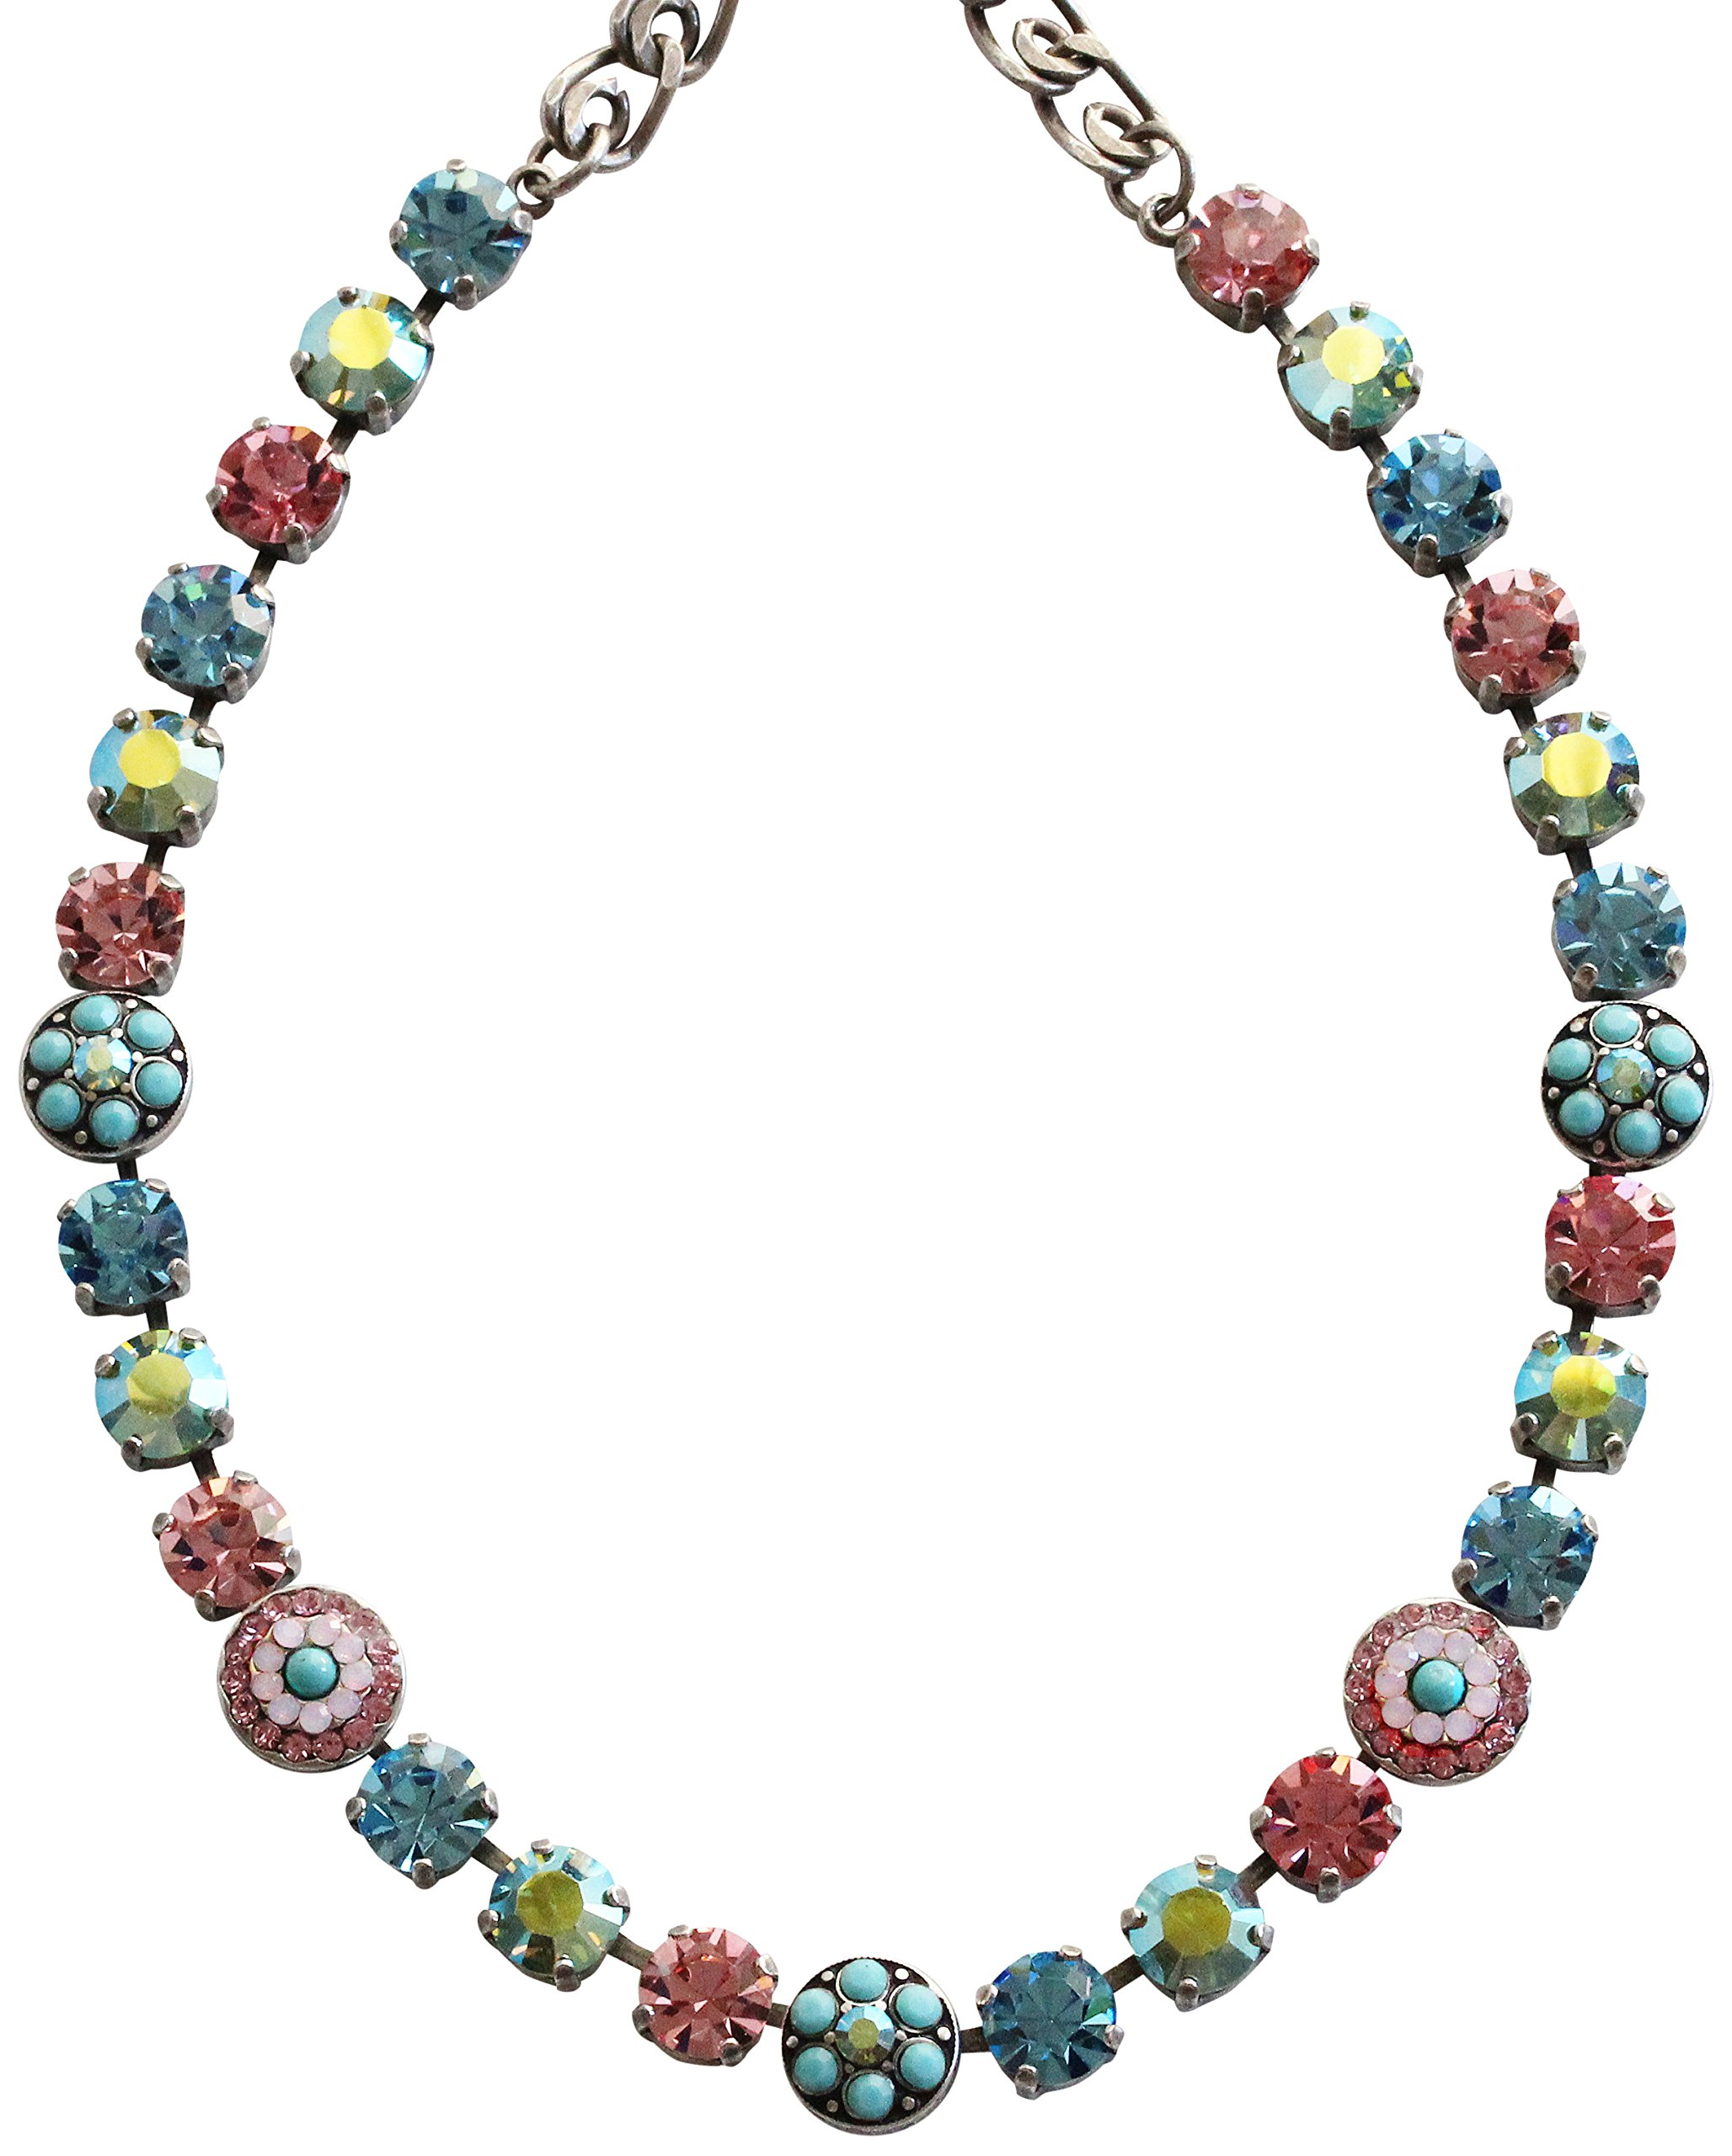 Mariana Silvertone Flower Shapes Crystal Necklace, 16'' ''Summer Fun'' Blue Pink 3044/1 3711